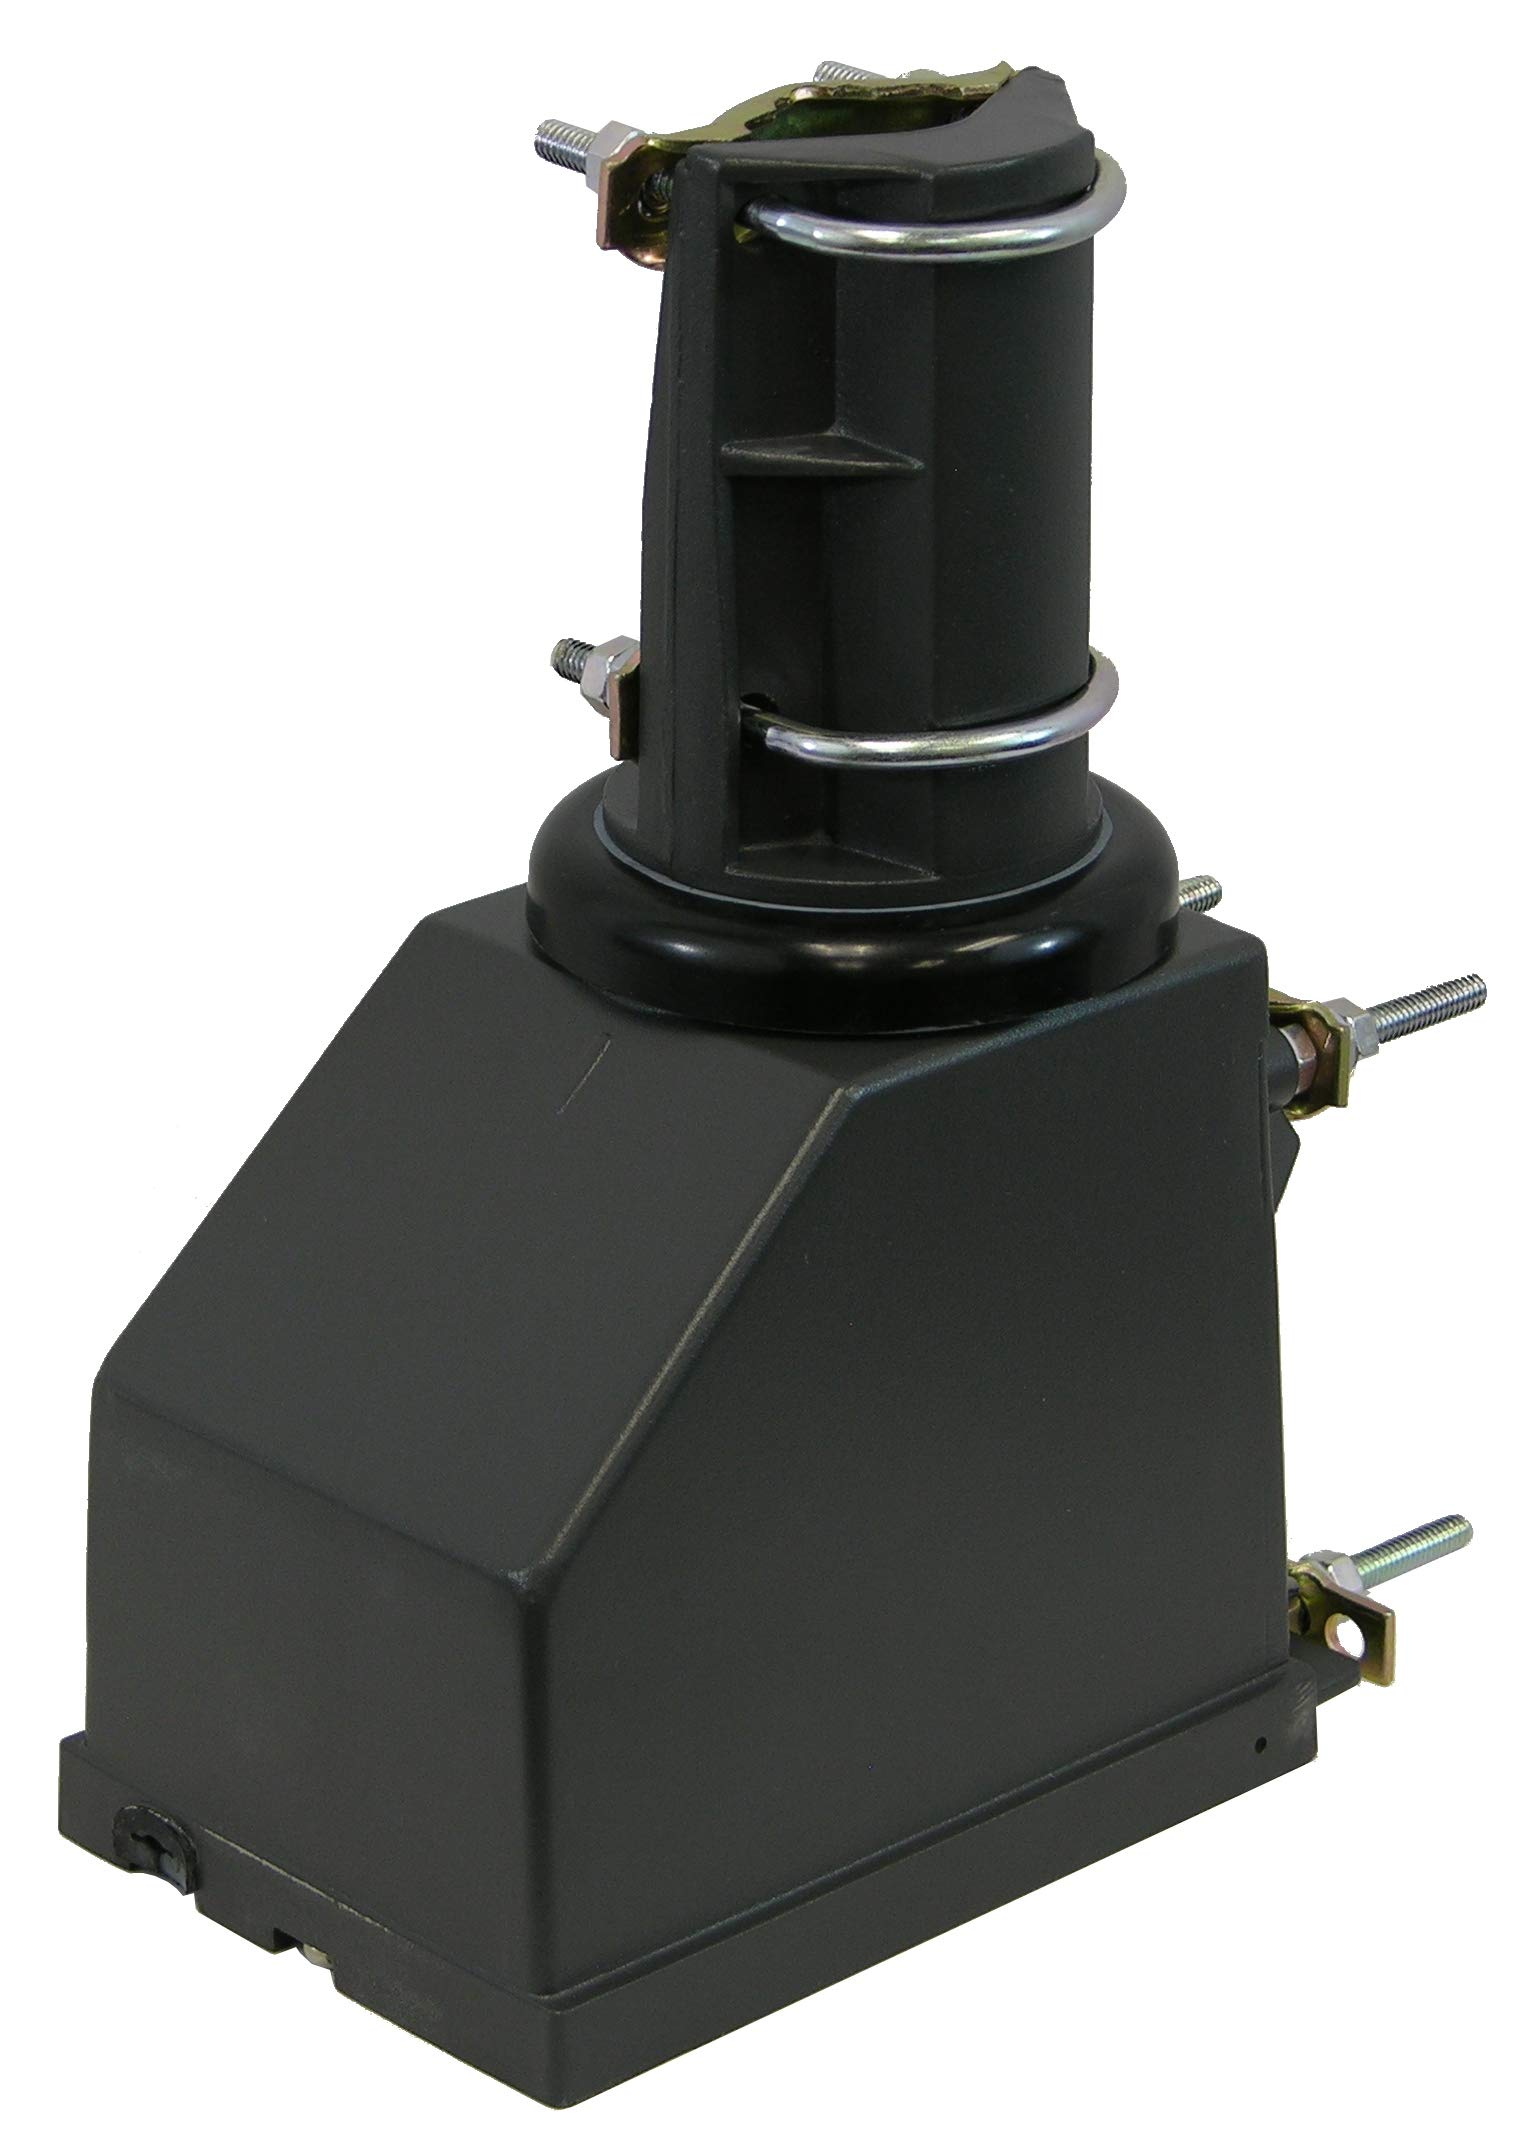 Channel Master CM9521HDXDU Drive Unit (Rotor Motor Only) Motor only for 9521HD